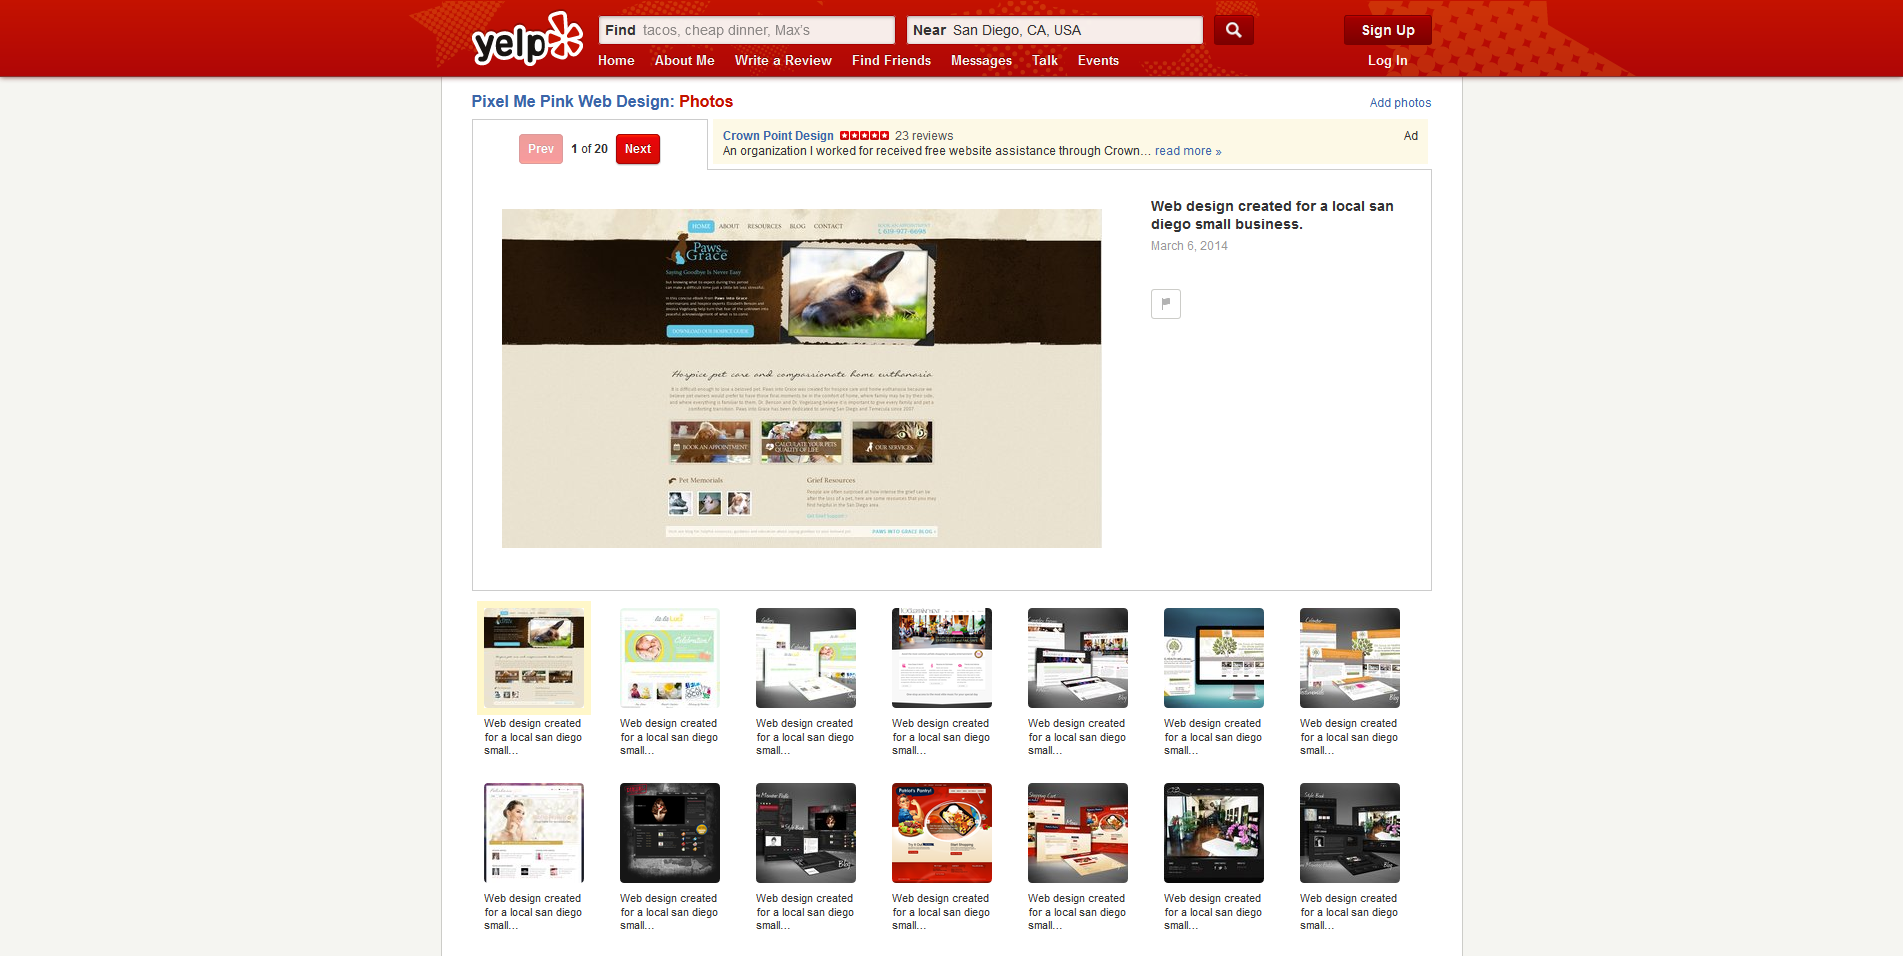 Web design created for a local san diego small business. - Yelp 2014-10-01 22-05-04